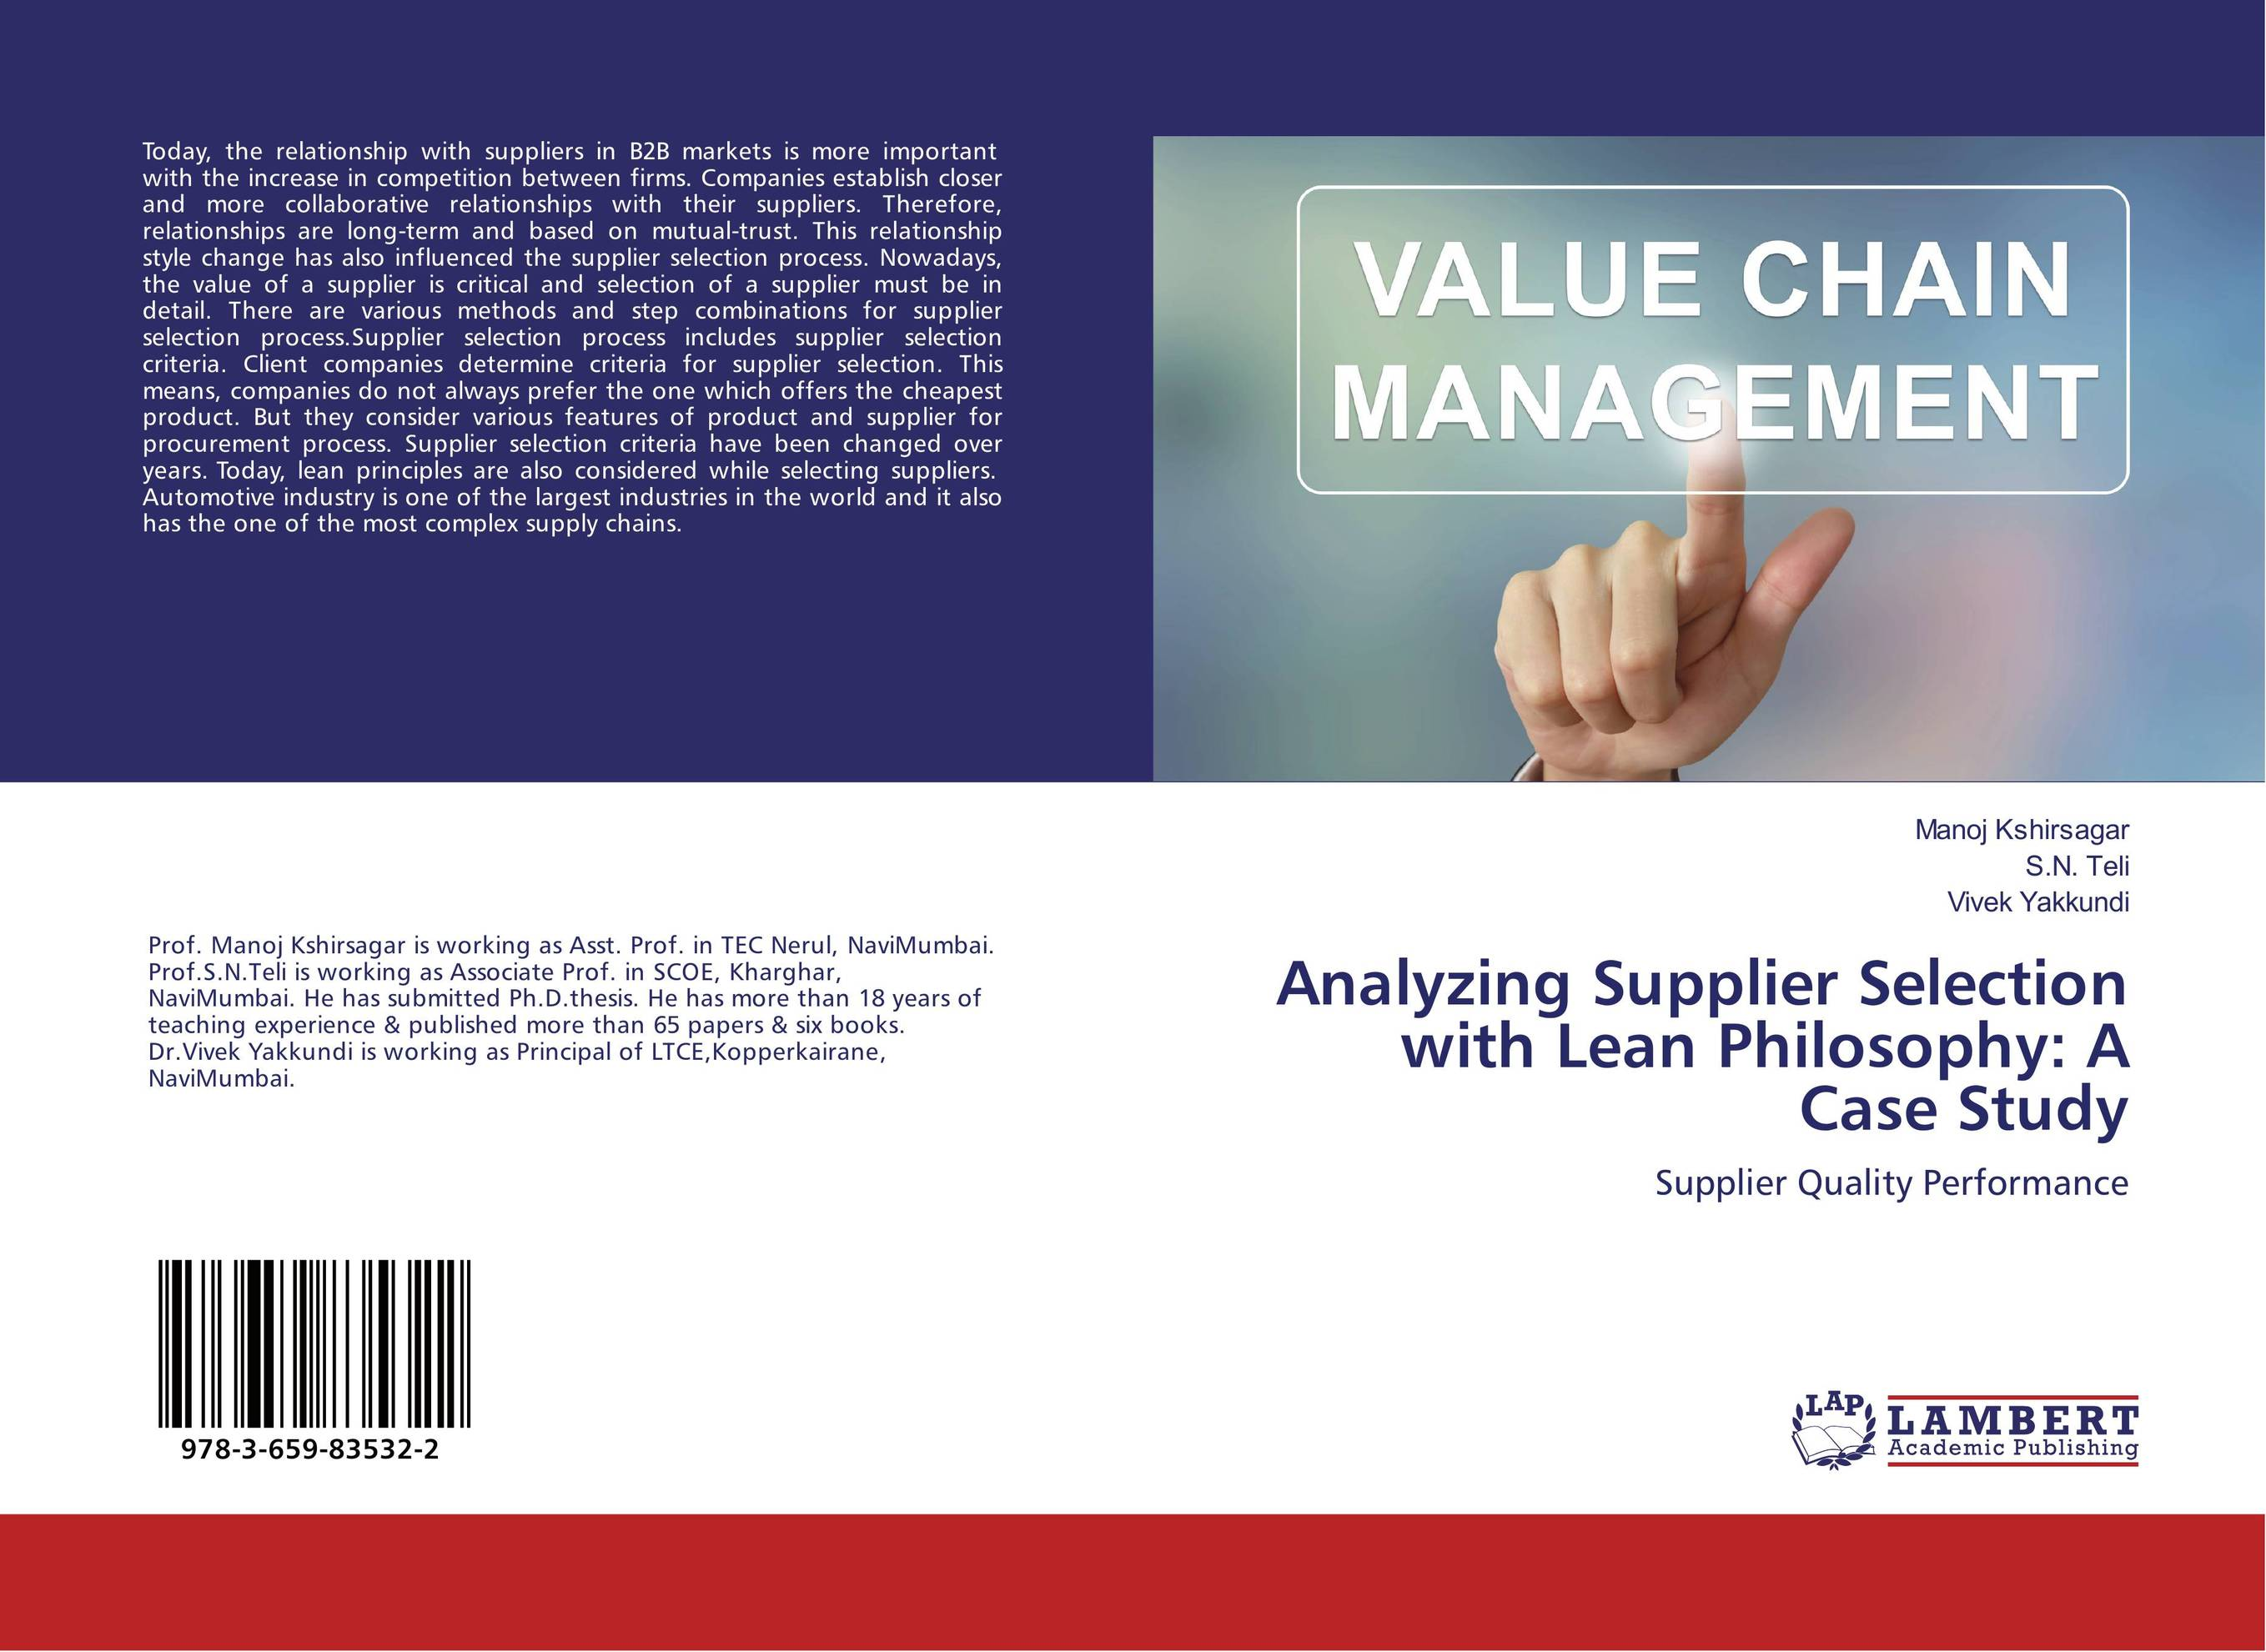 Analyzing Supplier Selection with Lean Philosophy: A Case Study je hewson hewson process instrumentation manifolds – their selection & use – a handbook